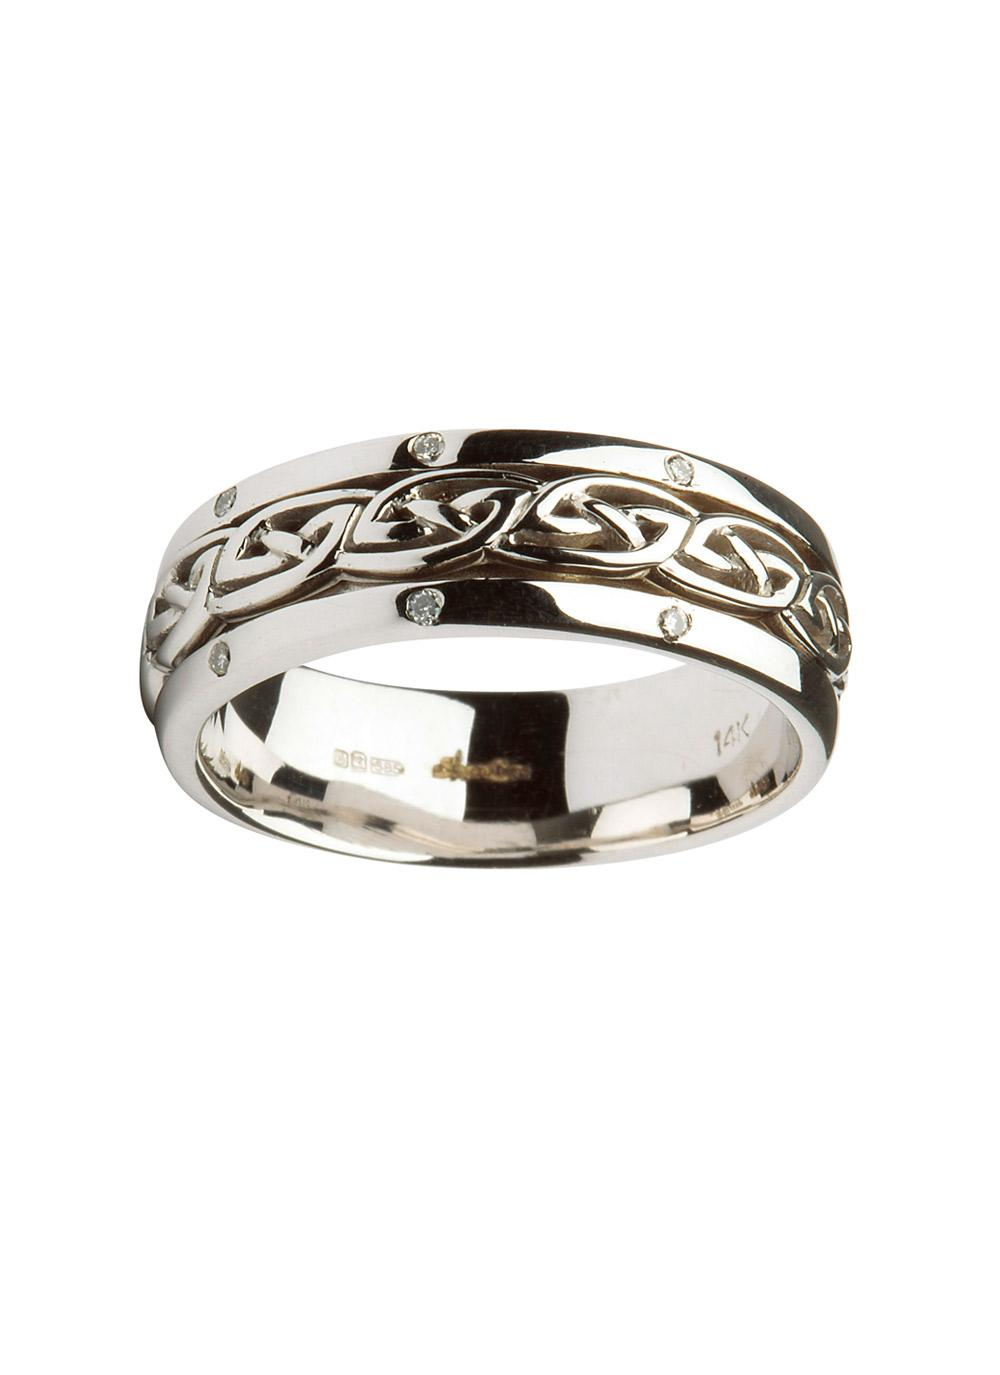 14k white gold celtic knot wedding ring blarney